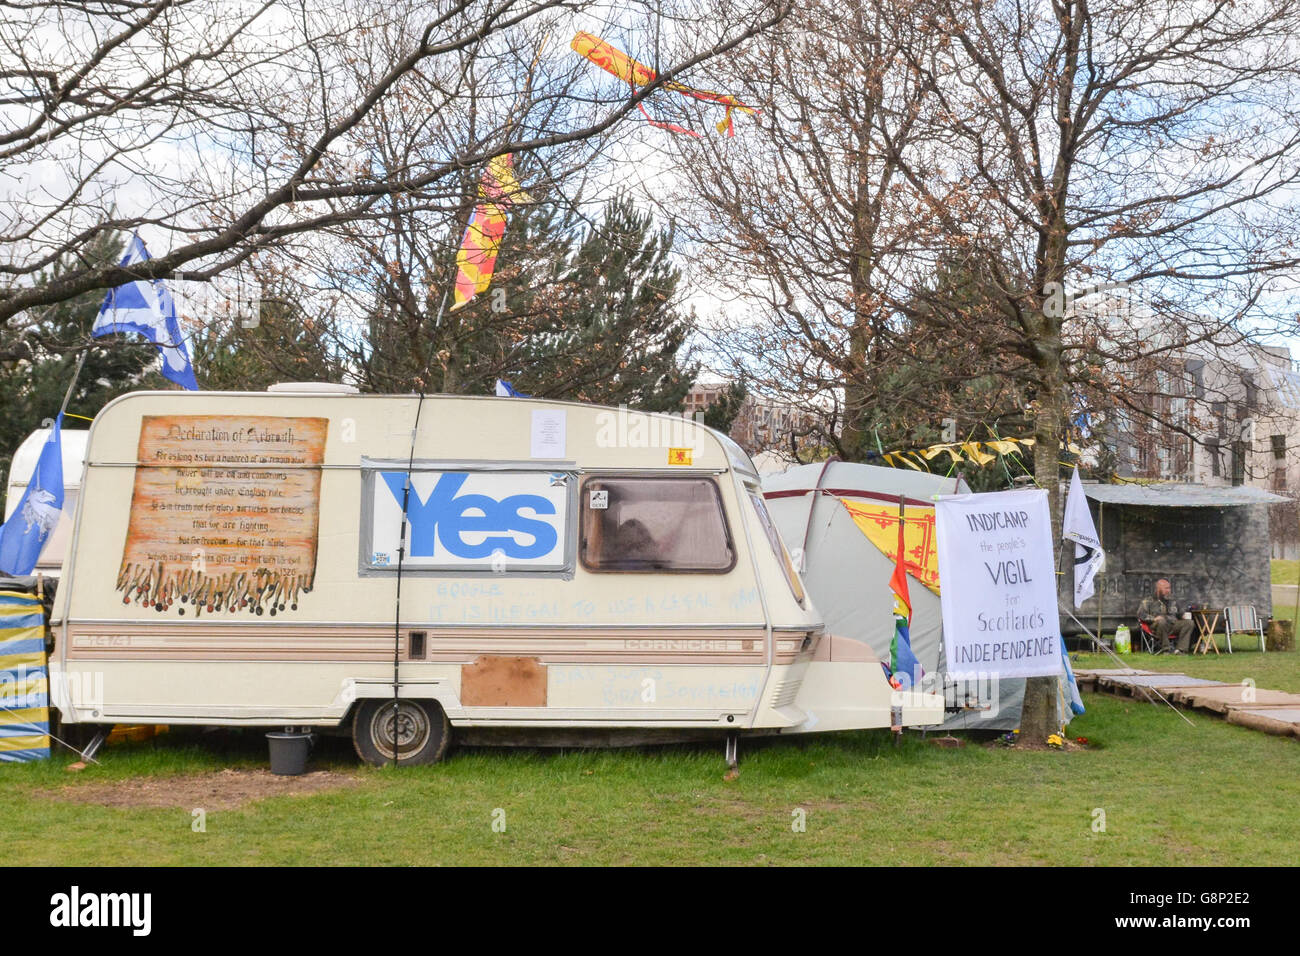 Holyrood pro independence protest camp 'IndyCamp' in Holyrood Park outside the Scottish Parliament building - Stock Image